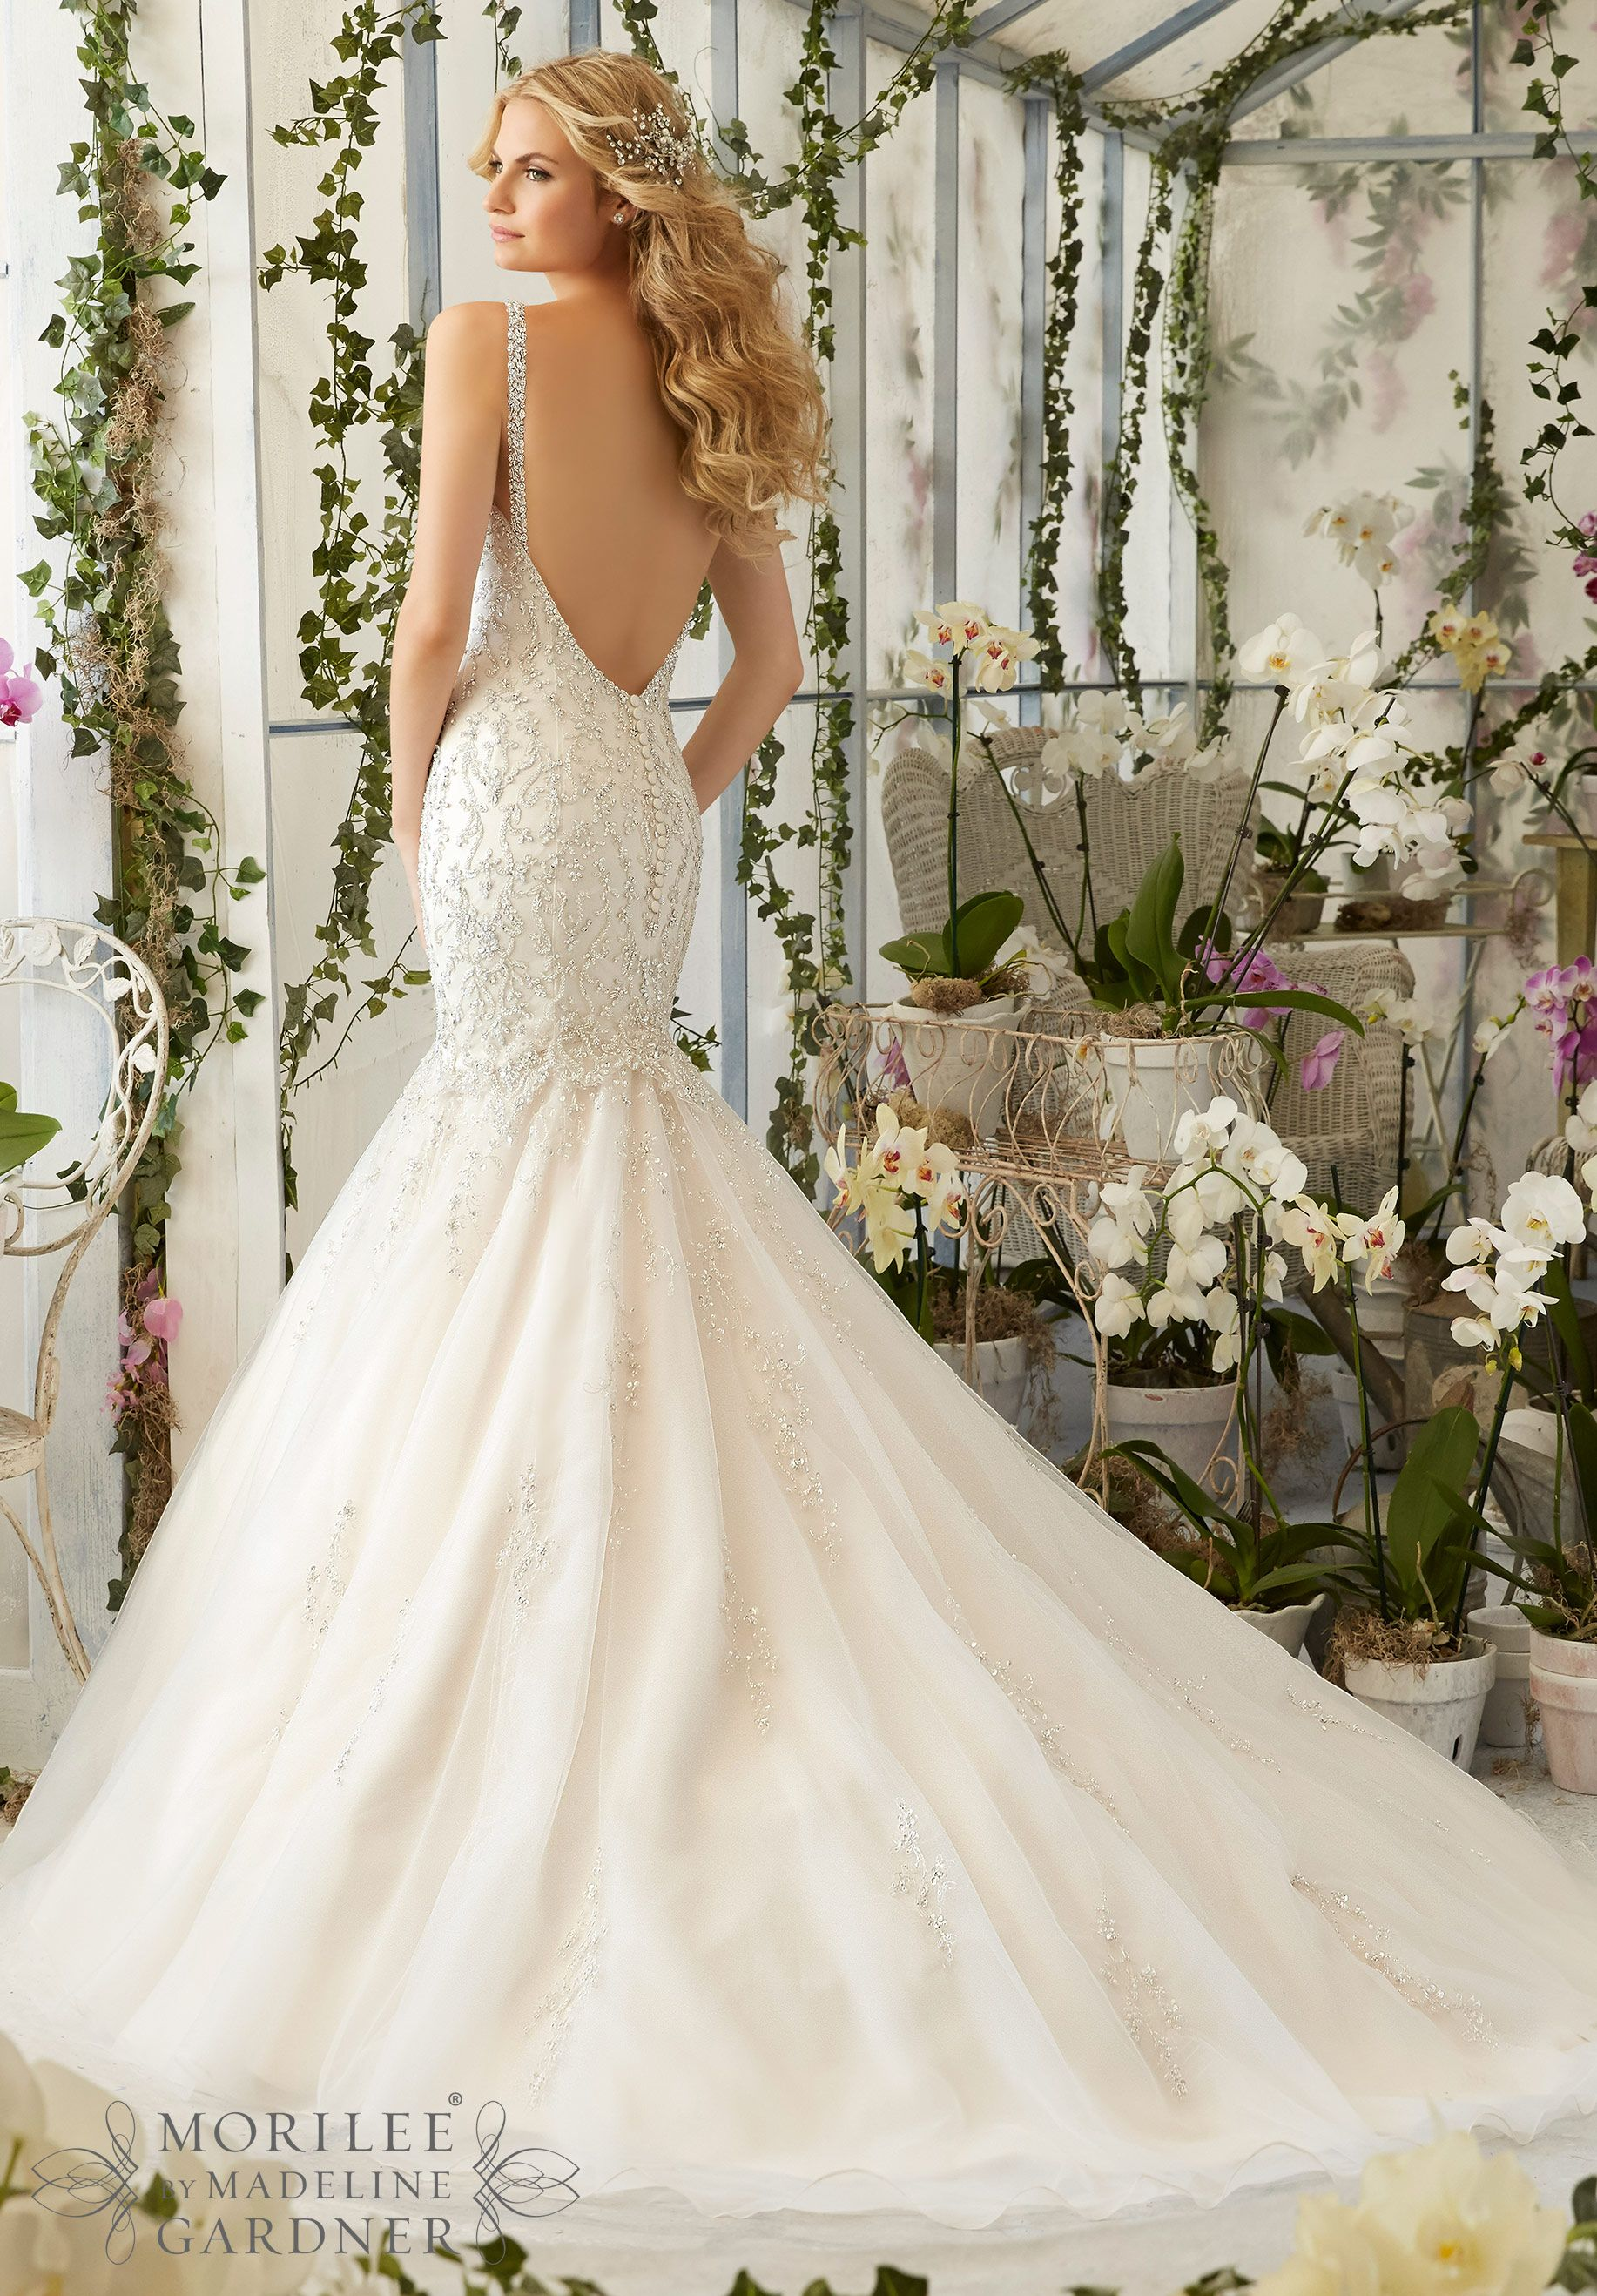 92811599cf1 Wedding Dress 2823 Intricate Crystal Beaded Embroidery on the Tulle Mermaid  Gown